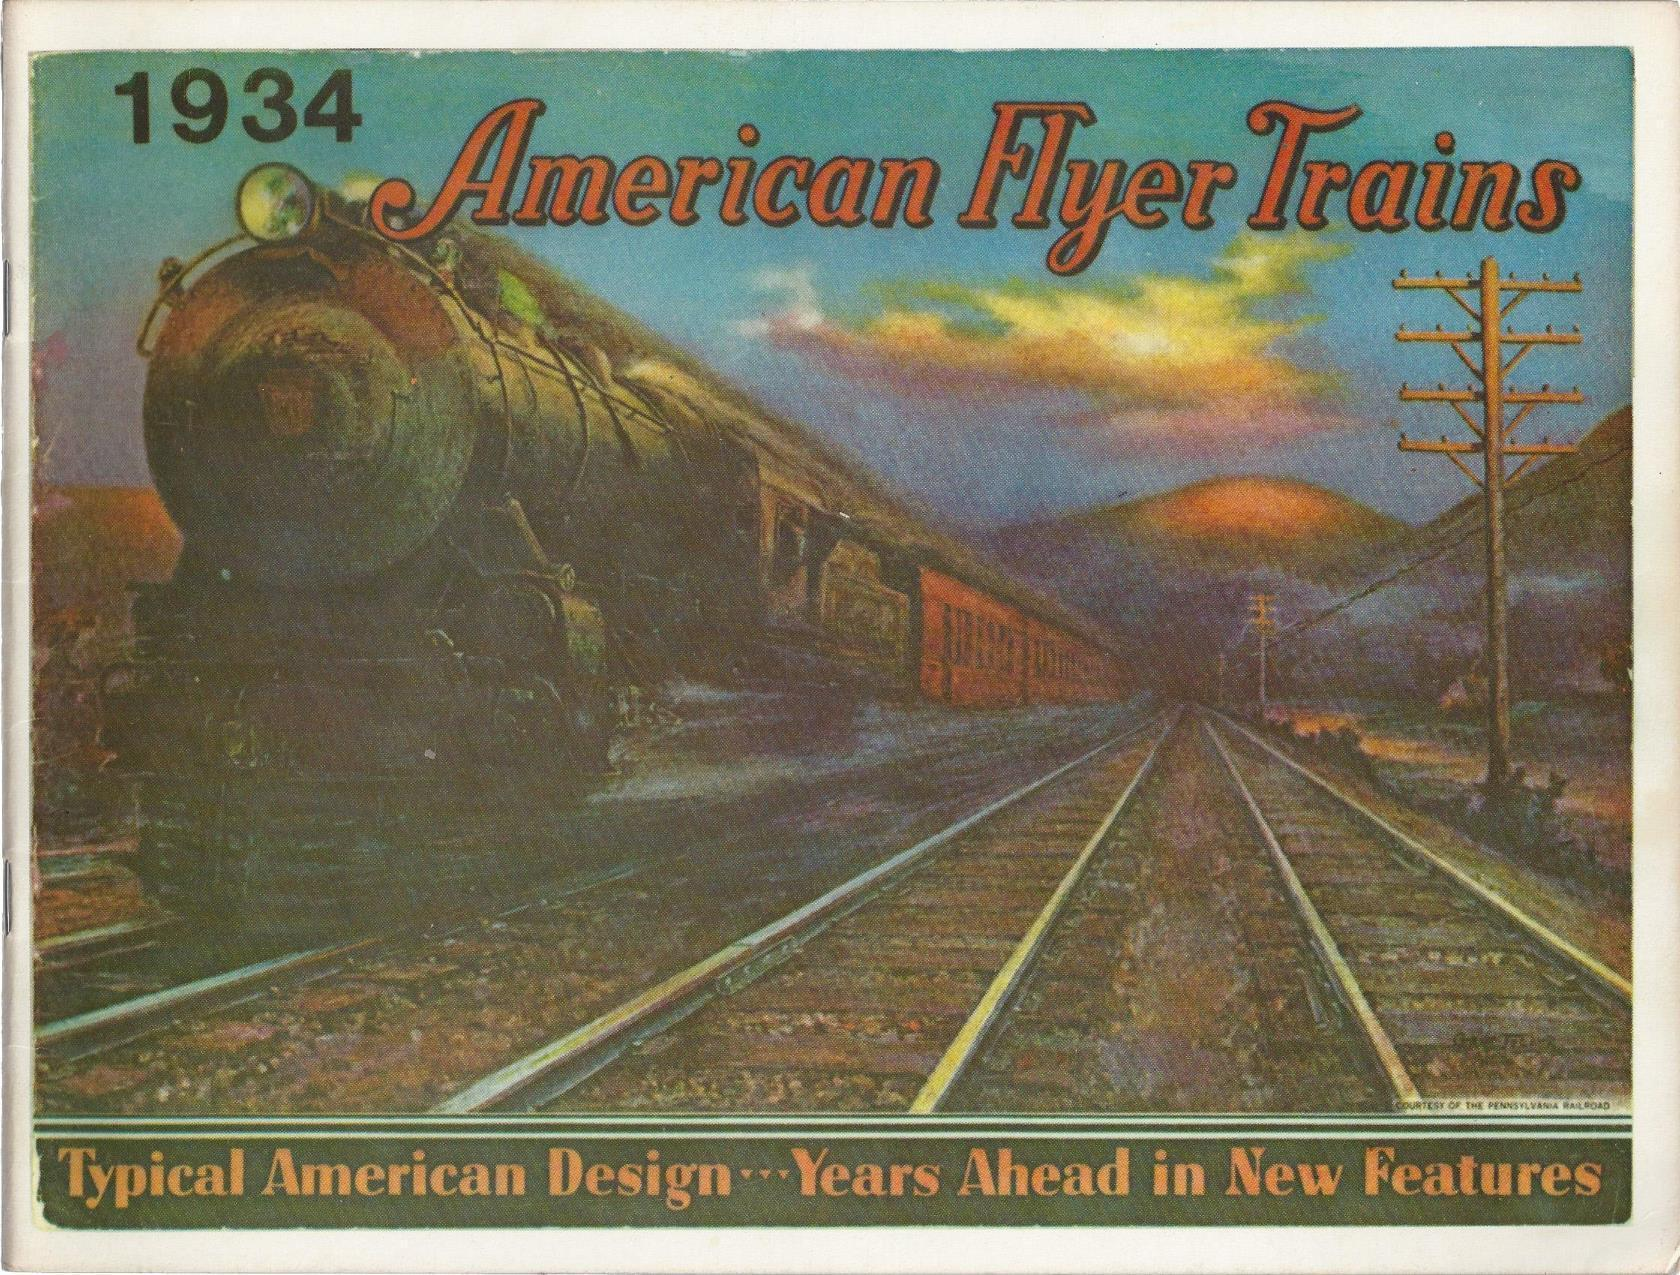 American Flyer Trains 1934 (1975 Reproduction), Bruce C. Greenberg